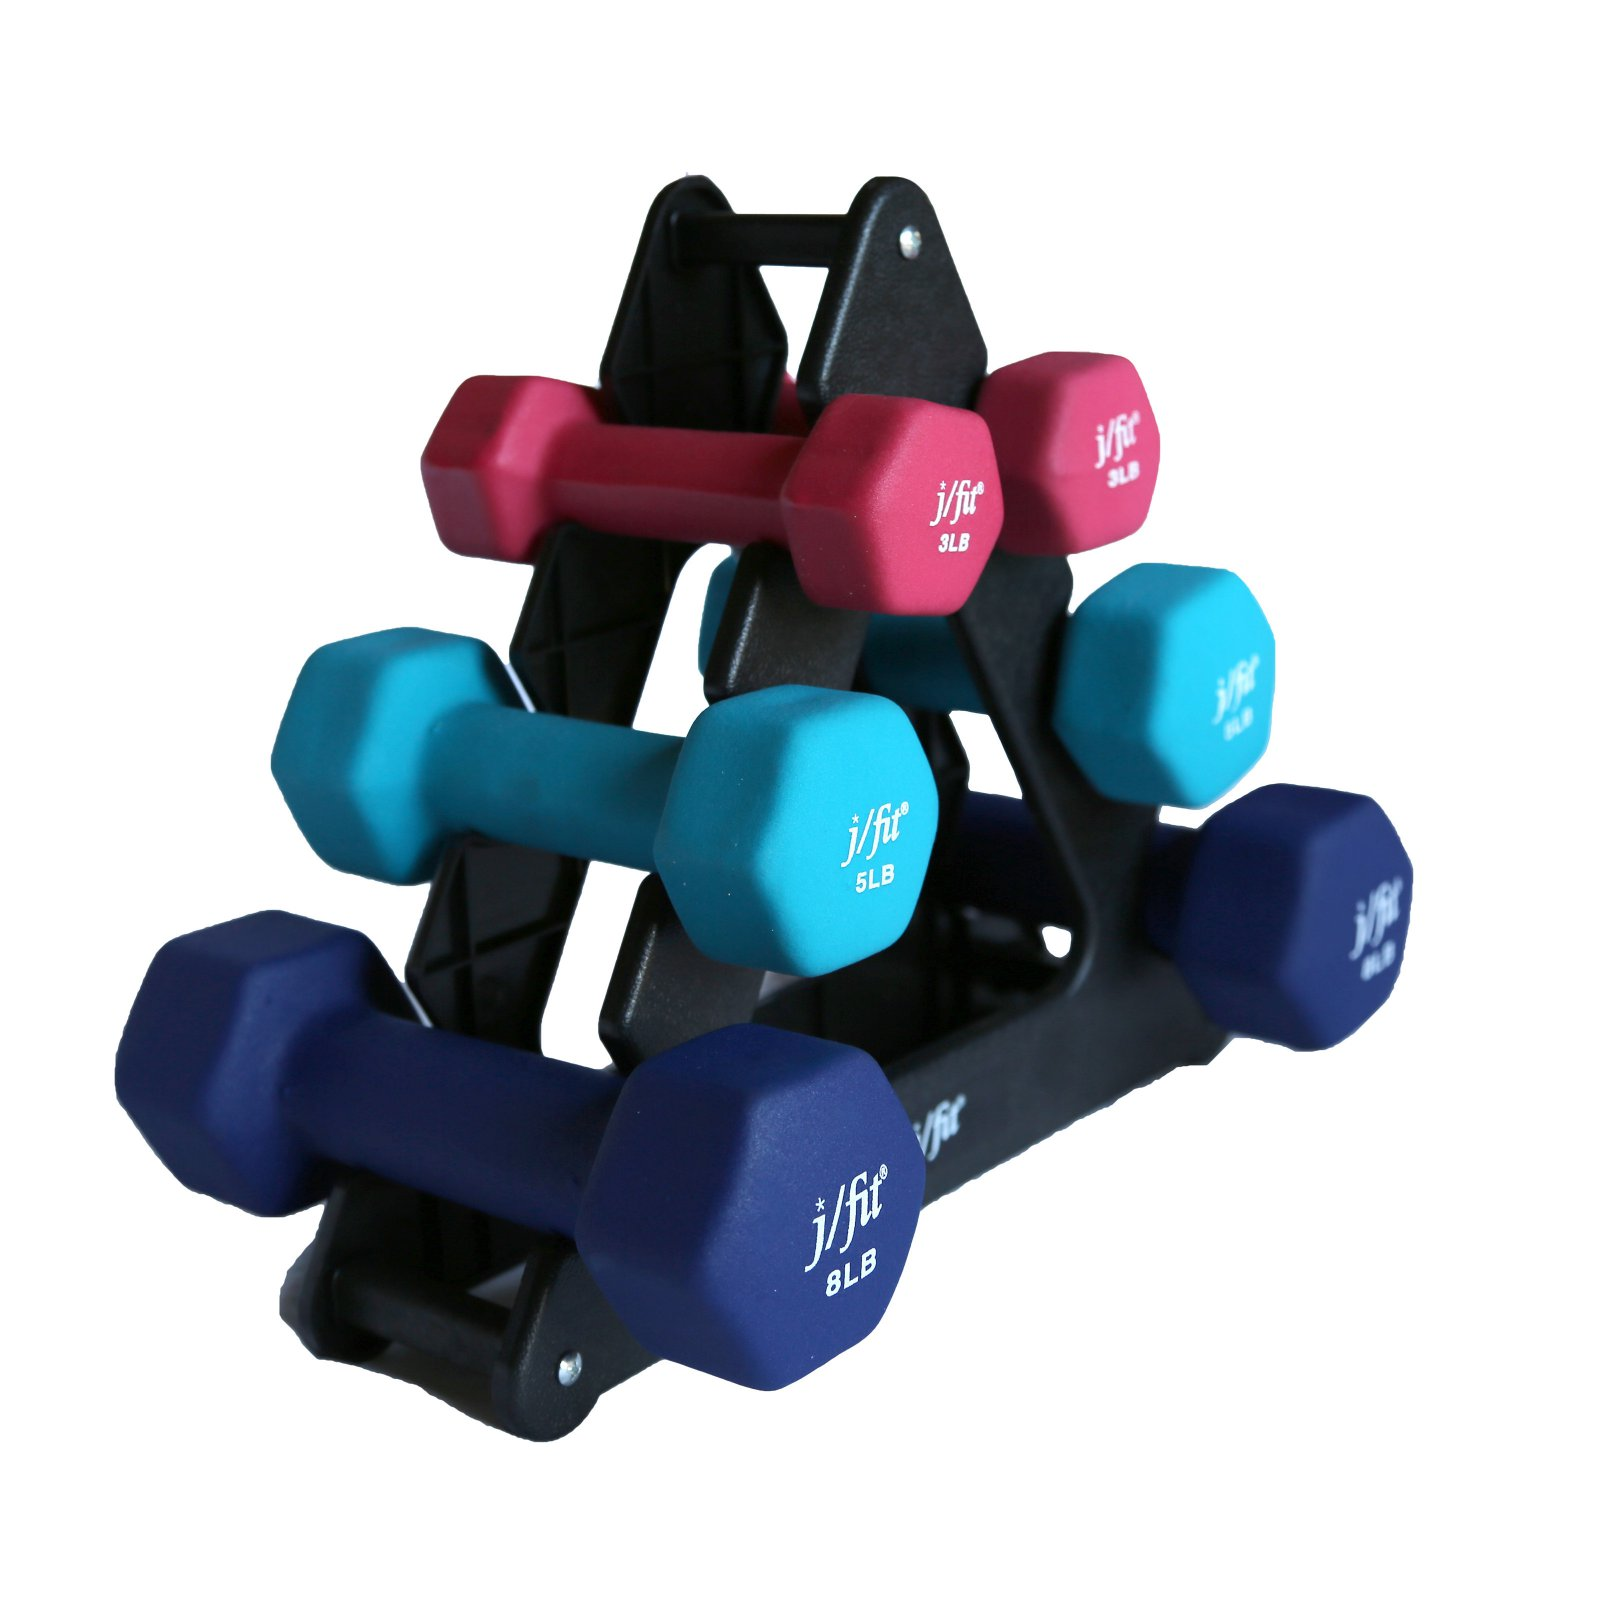 32 lbs. Dumbbell Set with Rack